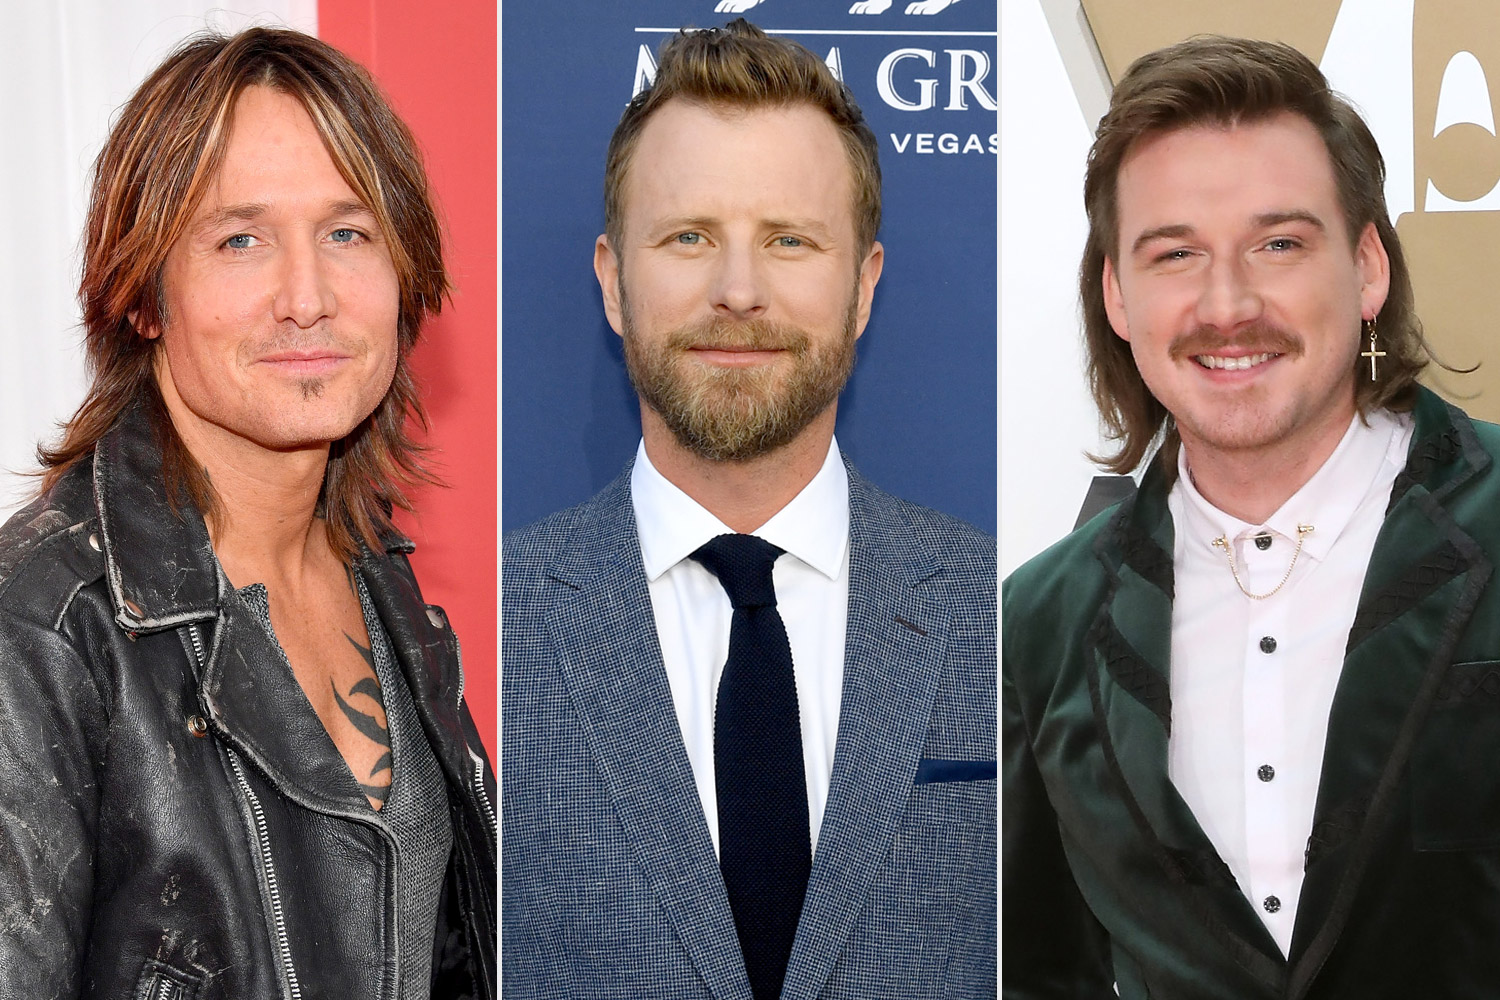 keith urban, dierks bentley, morgan wallen